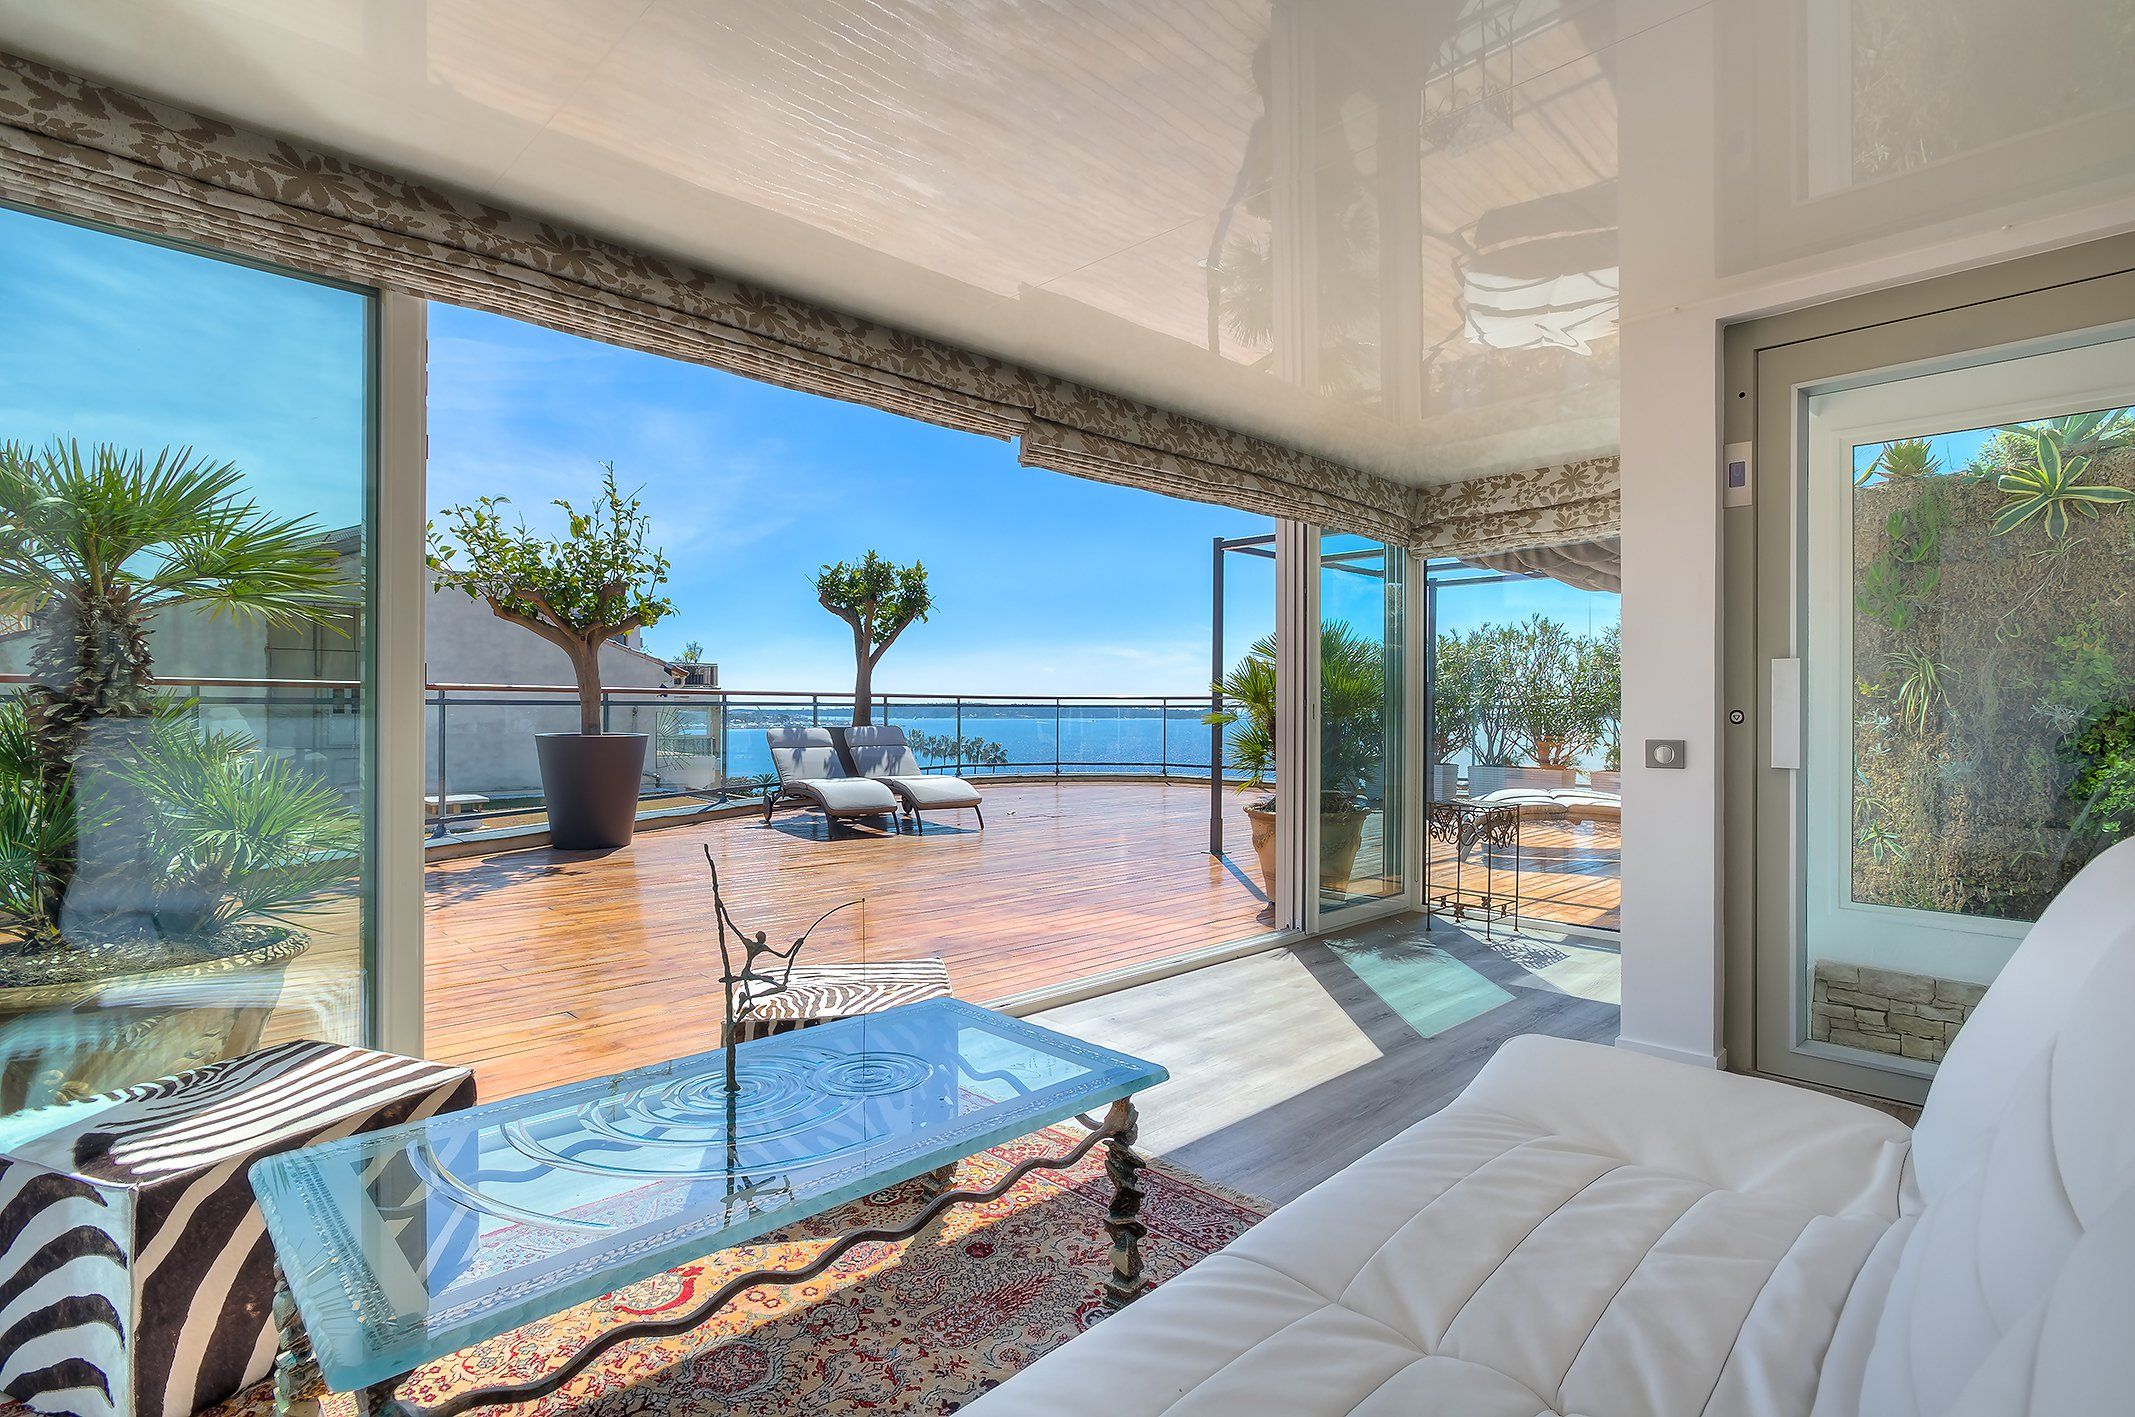 Apartments for sale in France, French Riviera #France # ...